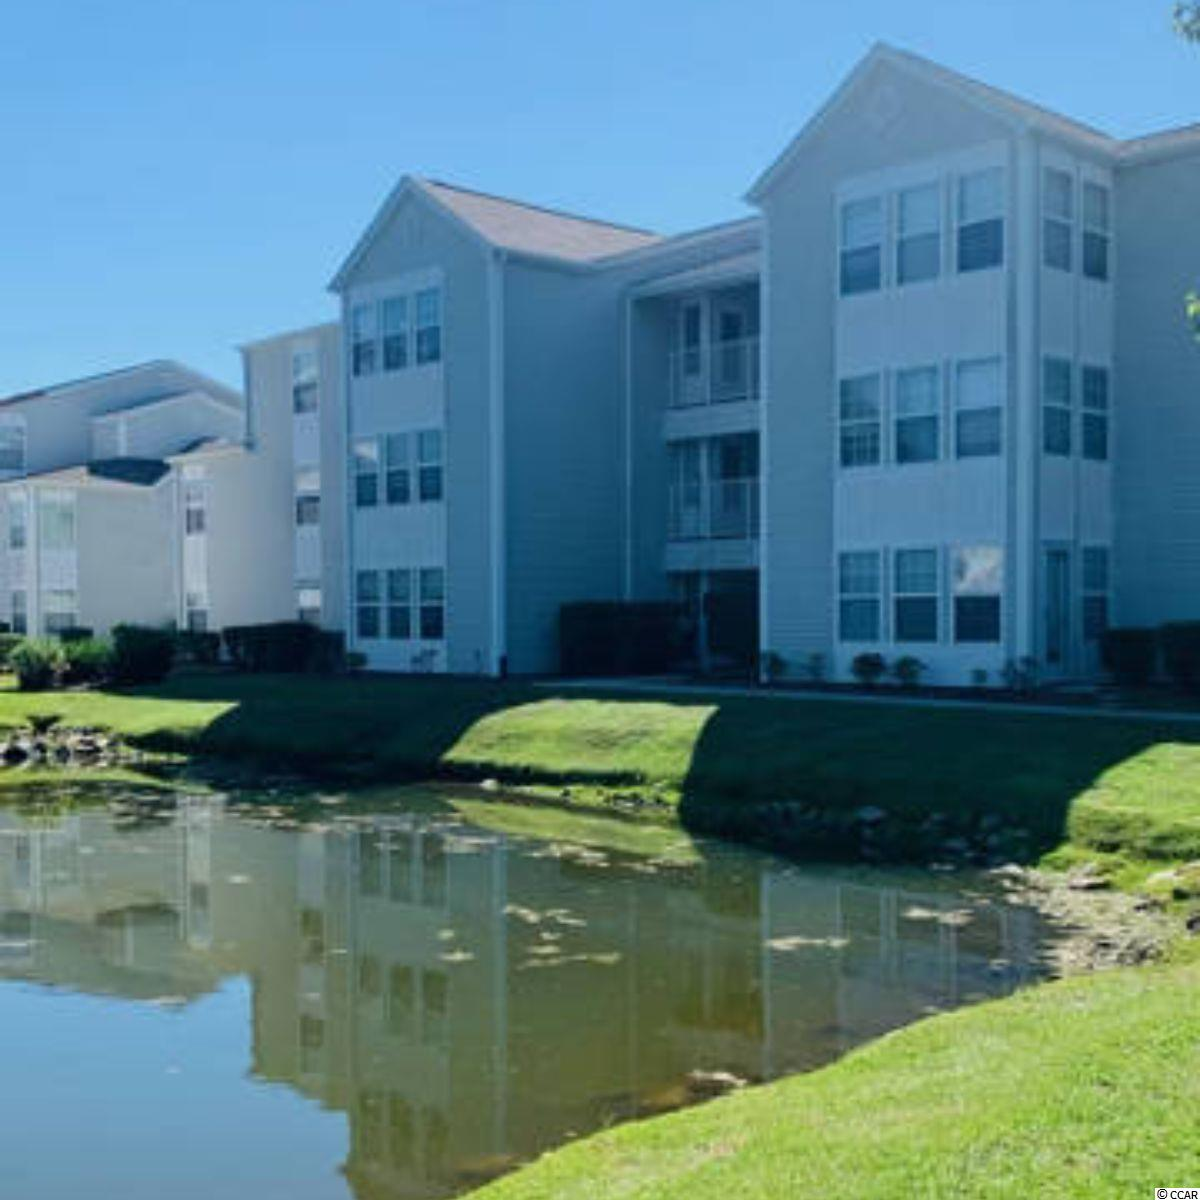 Spacious 3 bedroom located in a great neighborhood only 5 minutes away from the beautiful Surfside Beach; conveniently located close to local attractions such as Market Commons, Broadway at the Beach, Murrells Inlet Marshwalk. Outdoor pool and club house located in the complex.